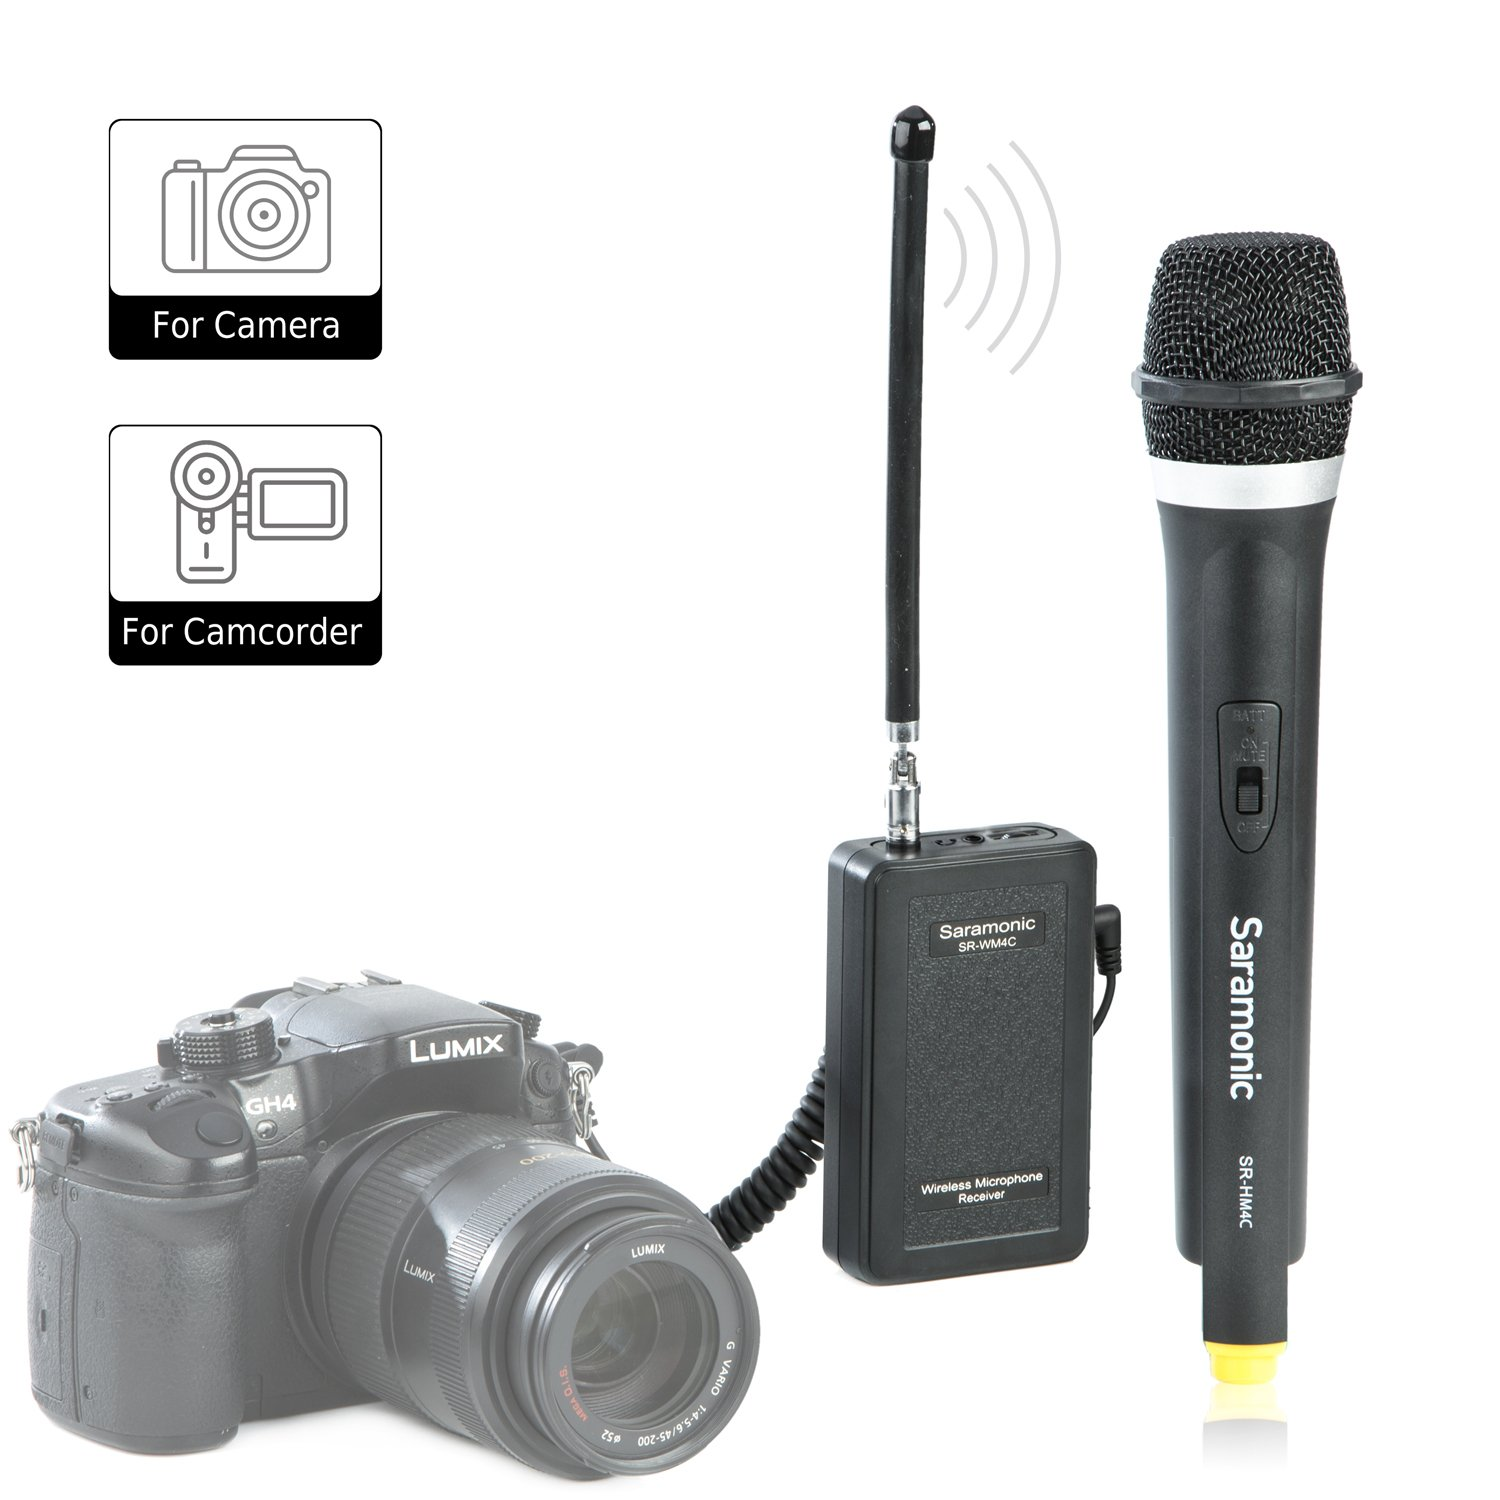 Saramonic WM4CA Professional Portable Wireless VHF Handheld Microphone System Video Mic for DSLR Camera Recording / Video Camcorder , Compatible with Canon / Nikon / Sony / Panasonic / BlackMagic / Zoom / Tascam / Roland